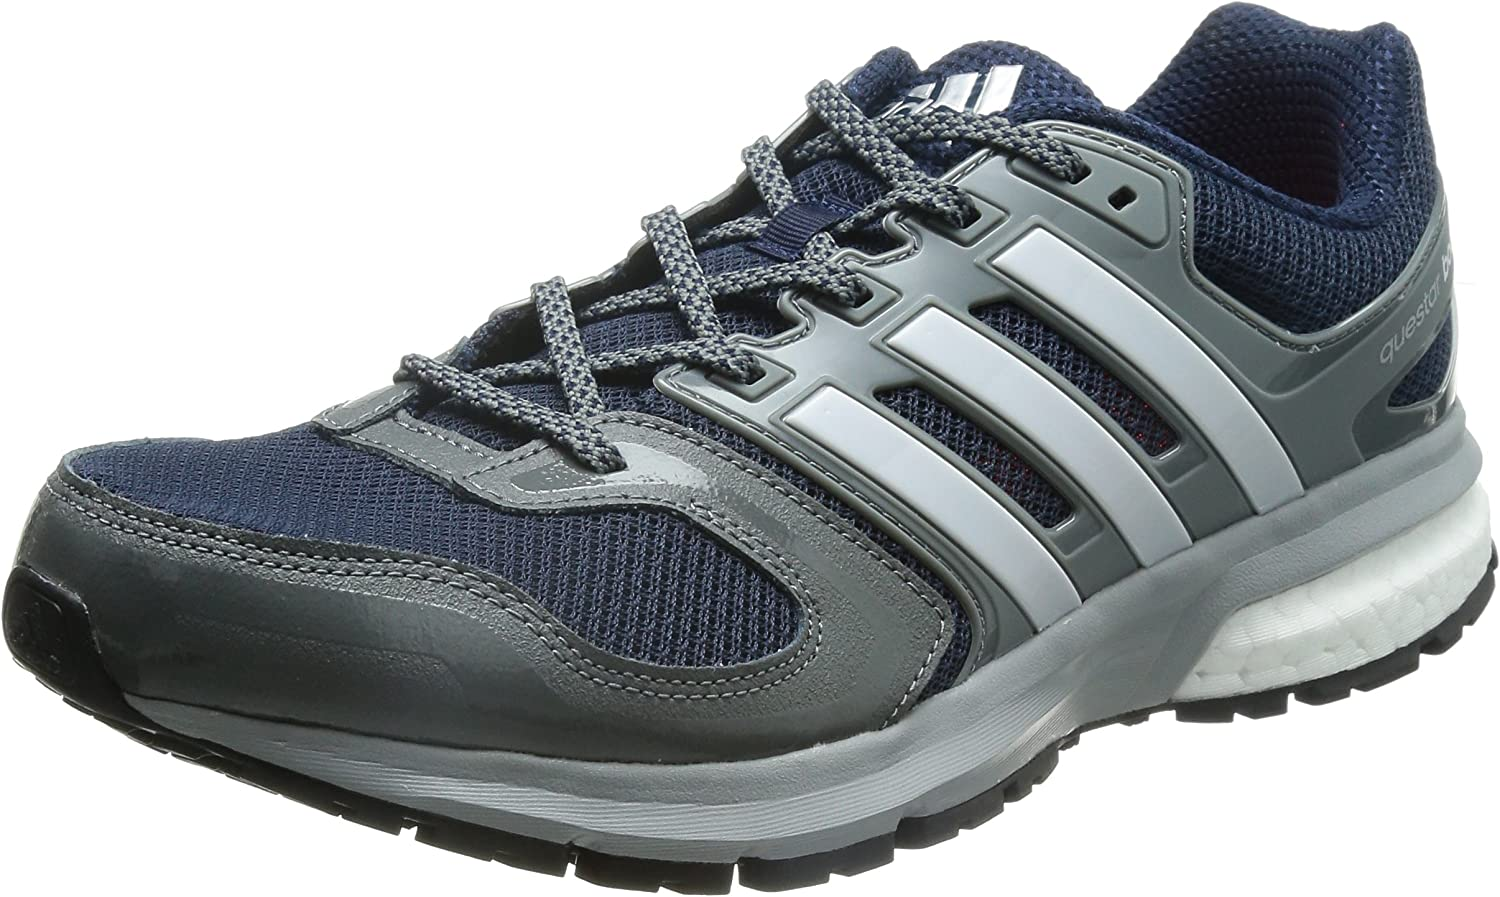 Adidas Questar Boost M ATR Men's Running shoes Sneakers Trainers Trainers Grey